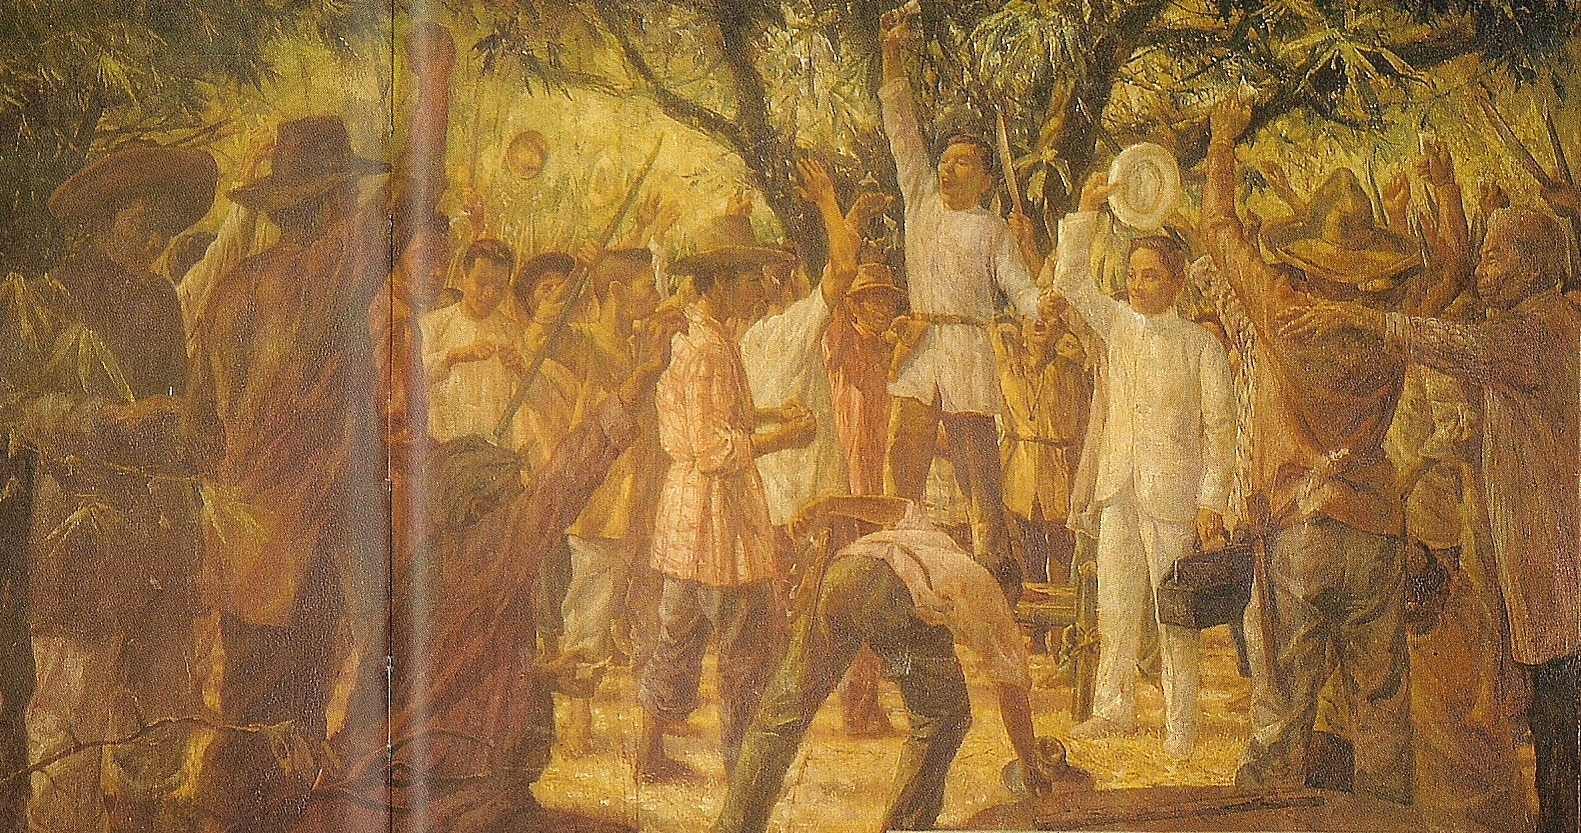 the code for andres bonifacio The unjust trial of andres bonifacio bonifacio's actions after the tejeros convention have been called counter-revolutionary, the charge of treason justified, and his elimination even necessary to ensure unity of the filipino revolutionaries.